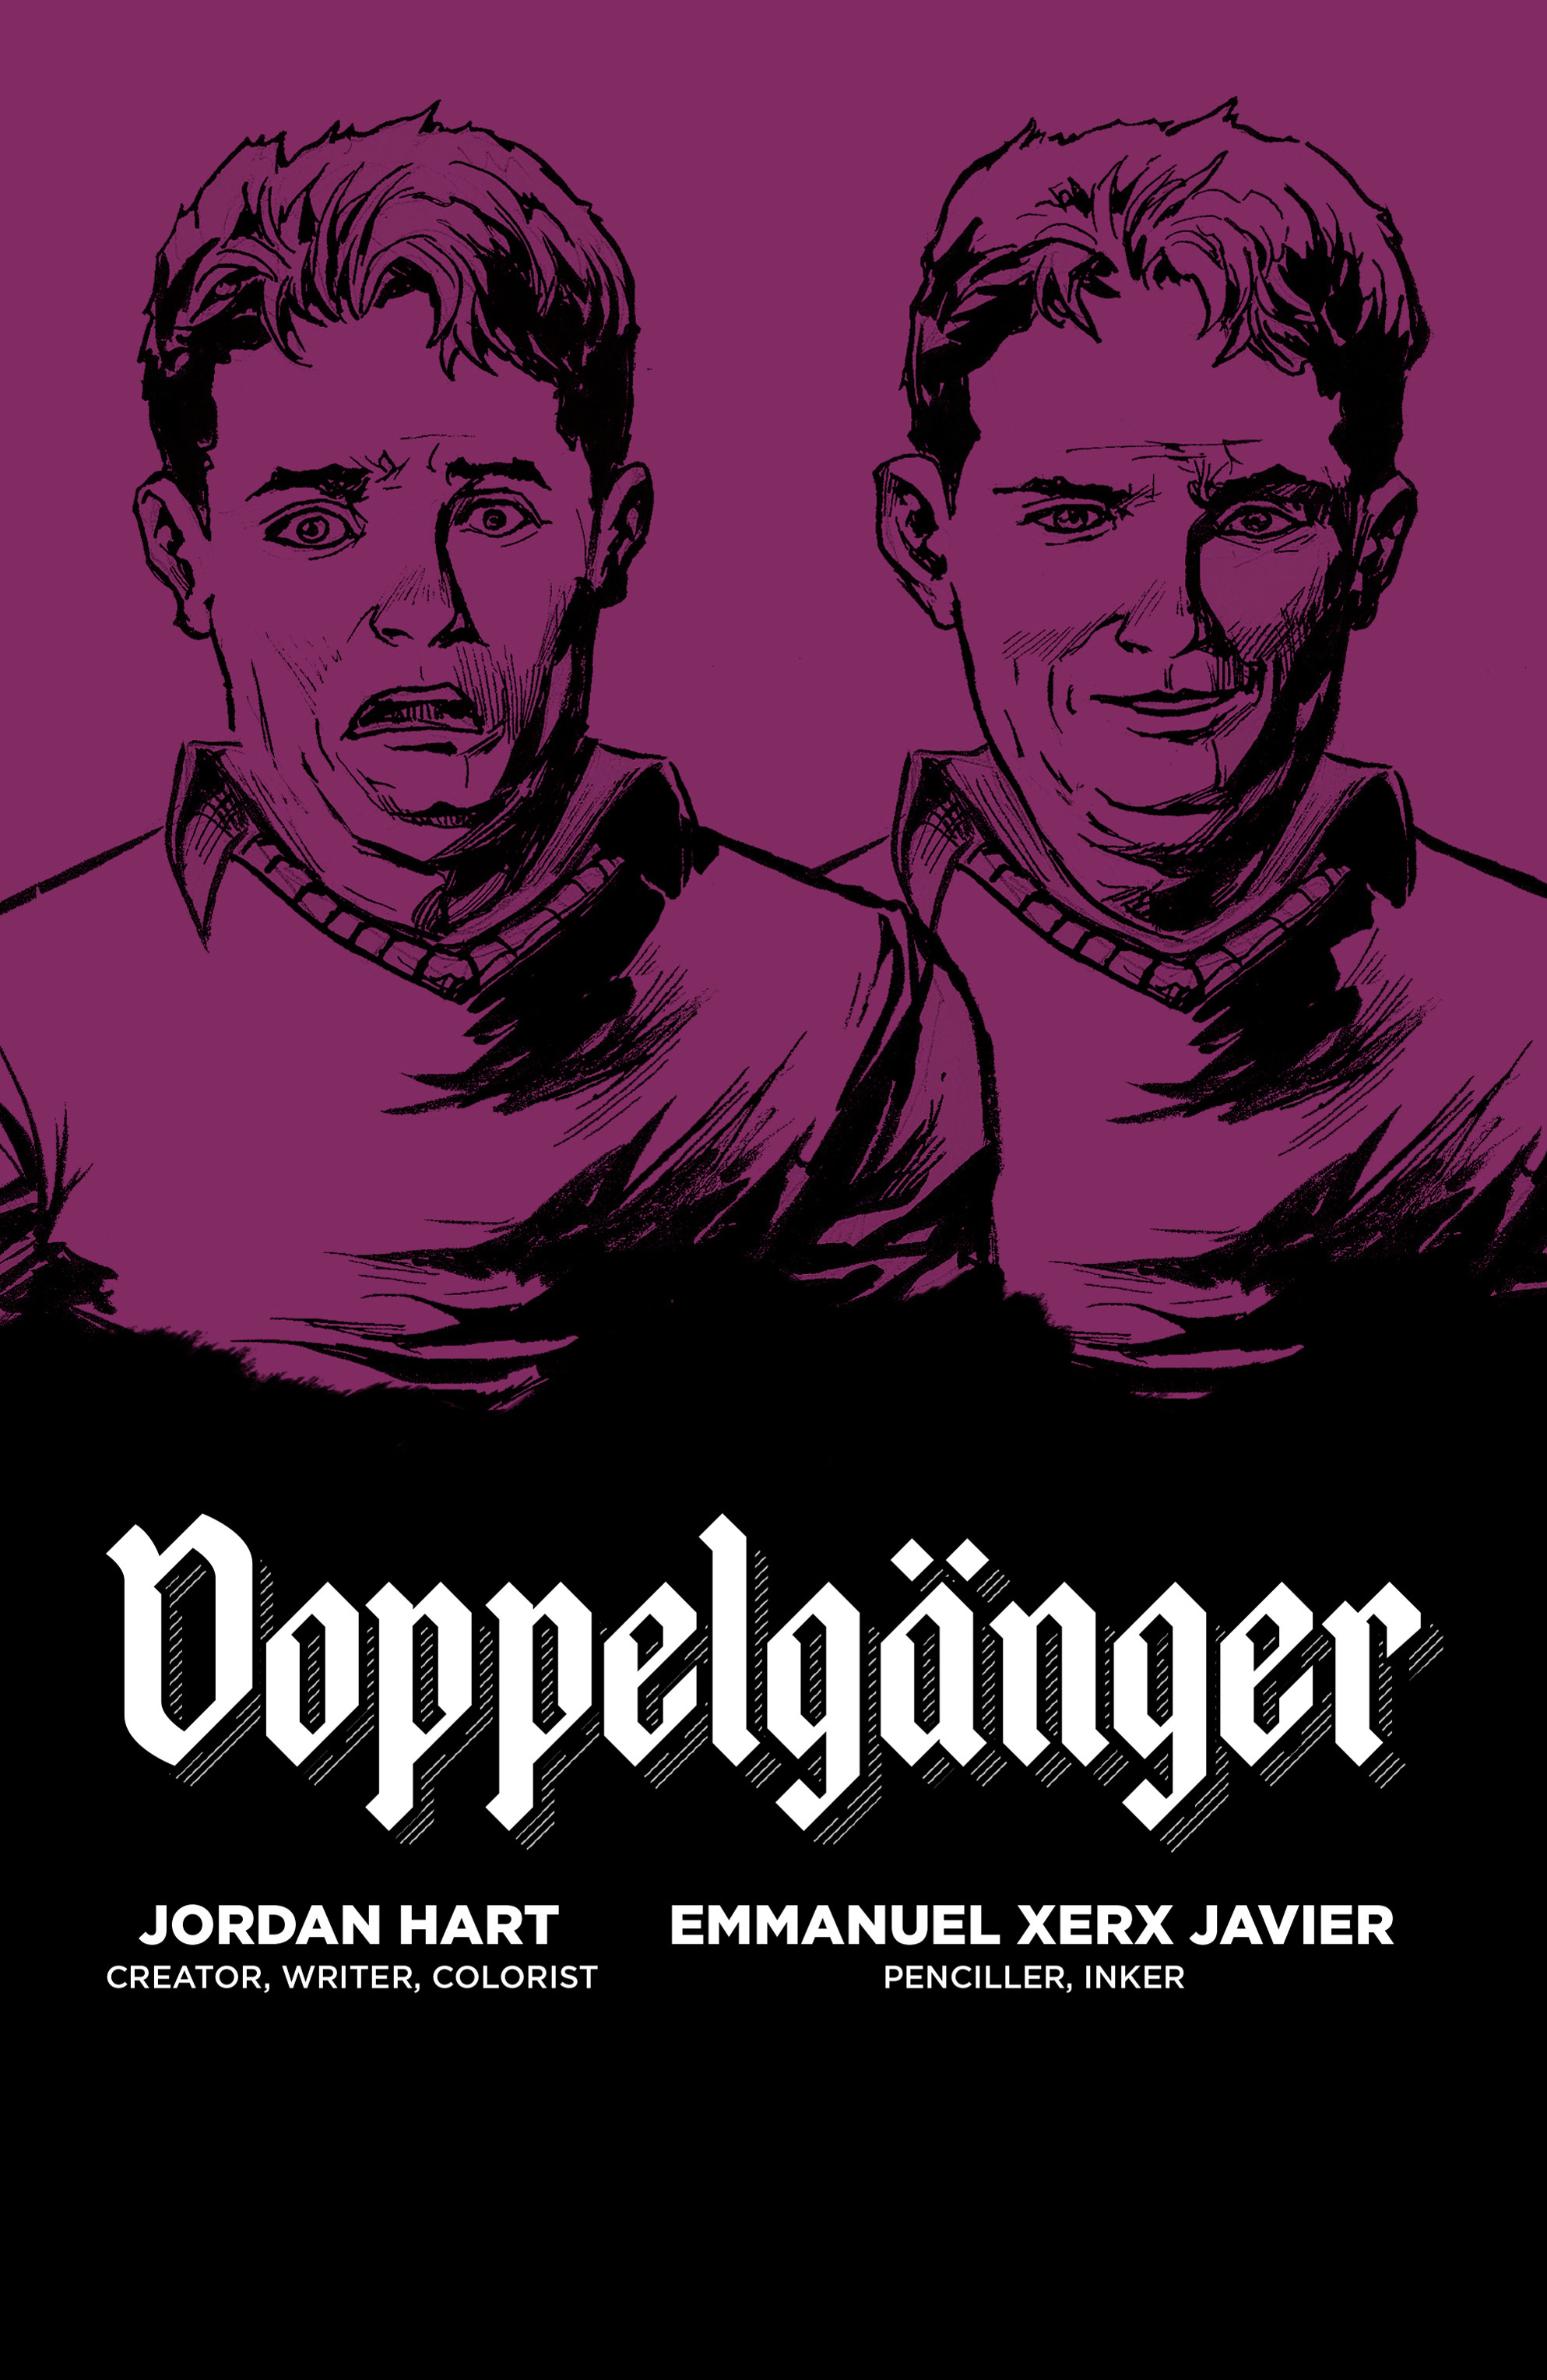 Read online Doppelganger comic -  Issue #1 - 5